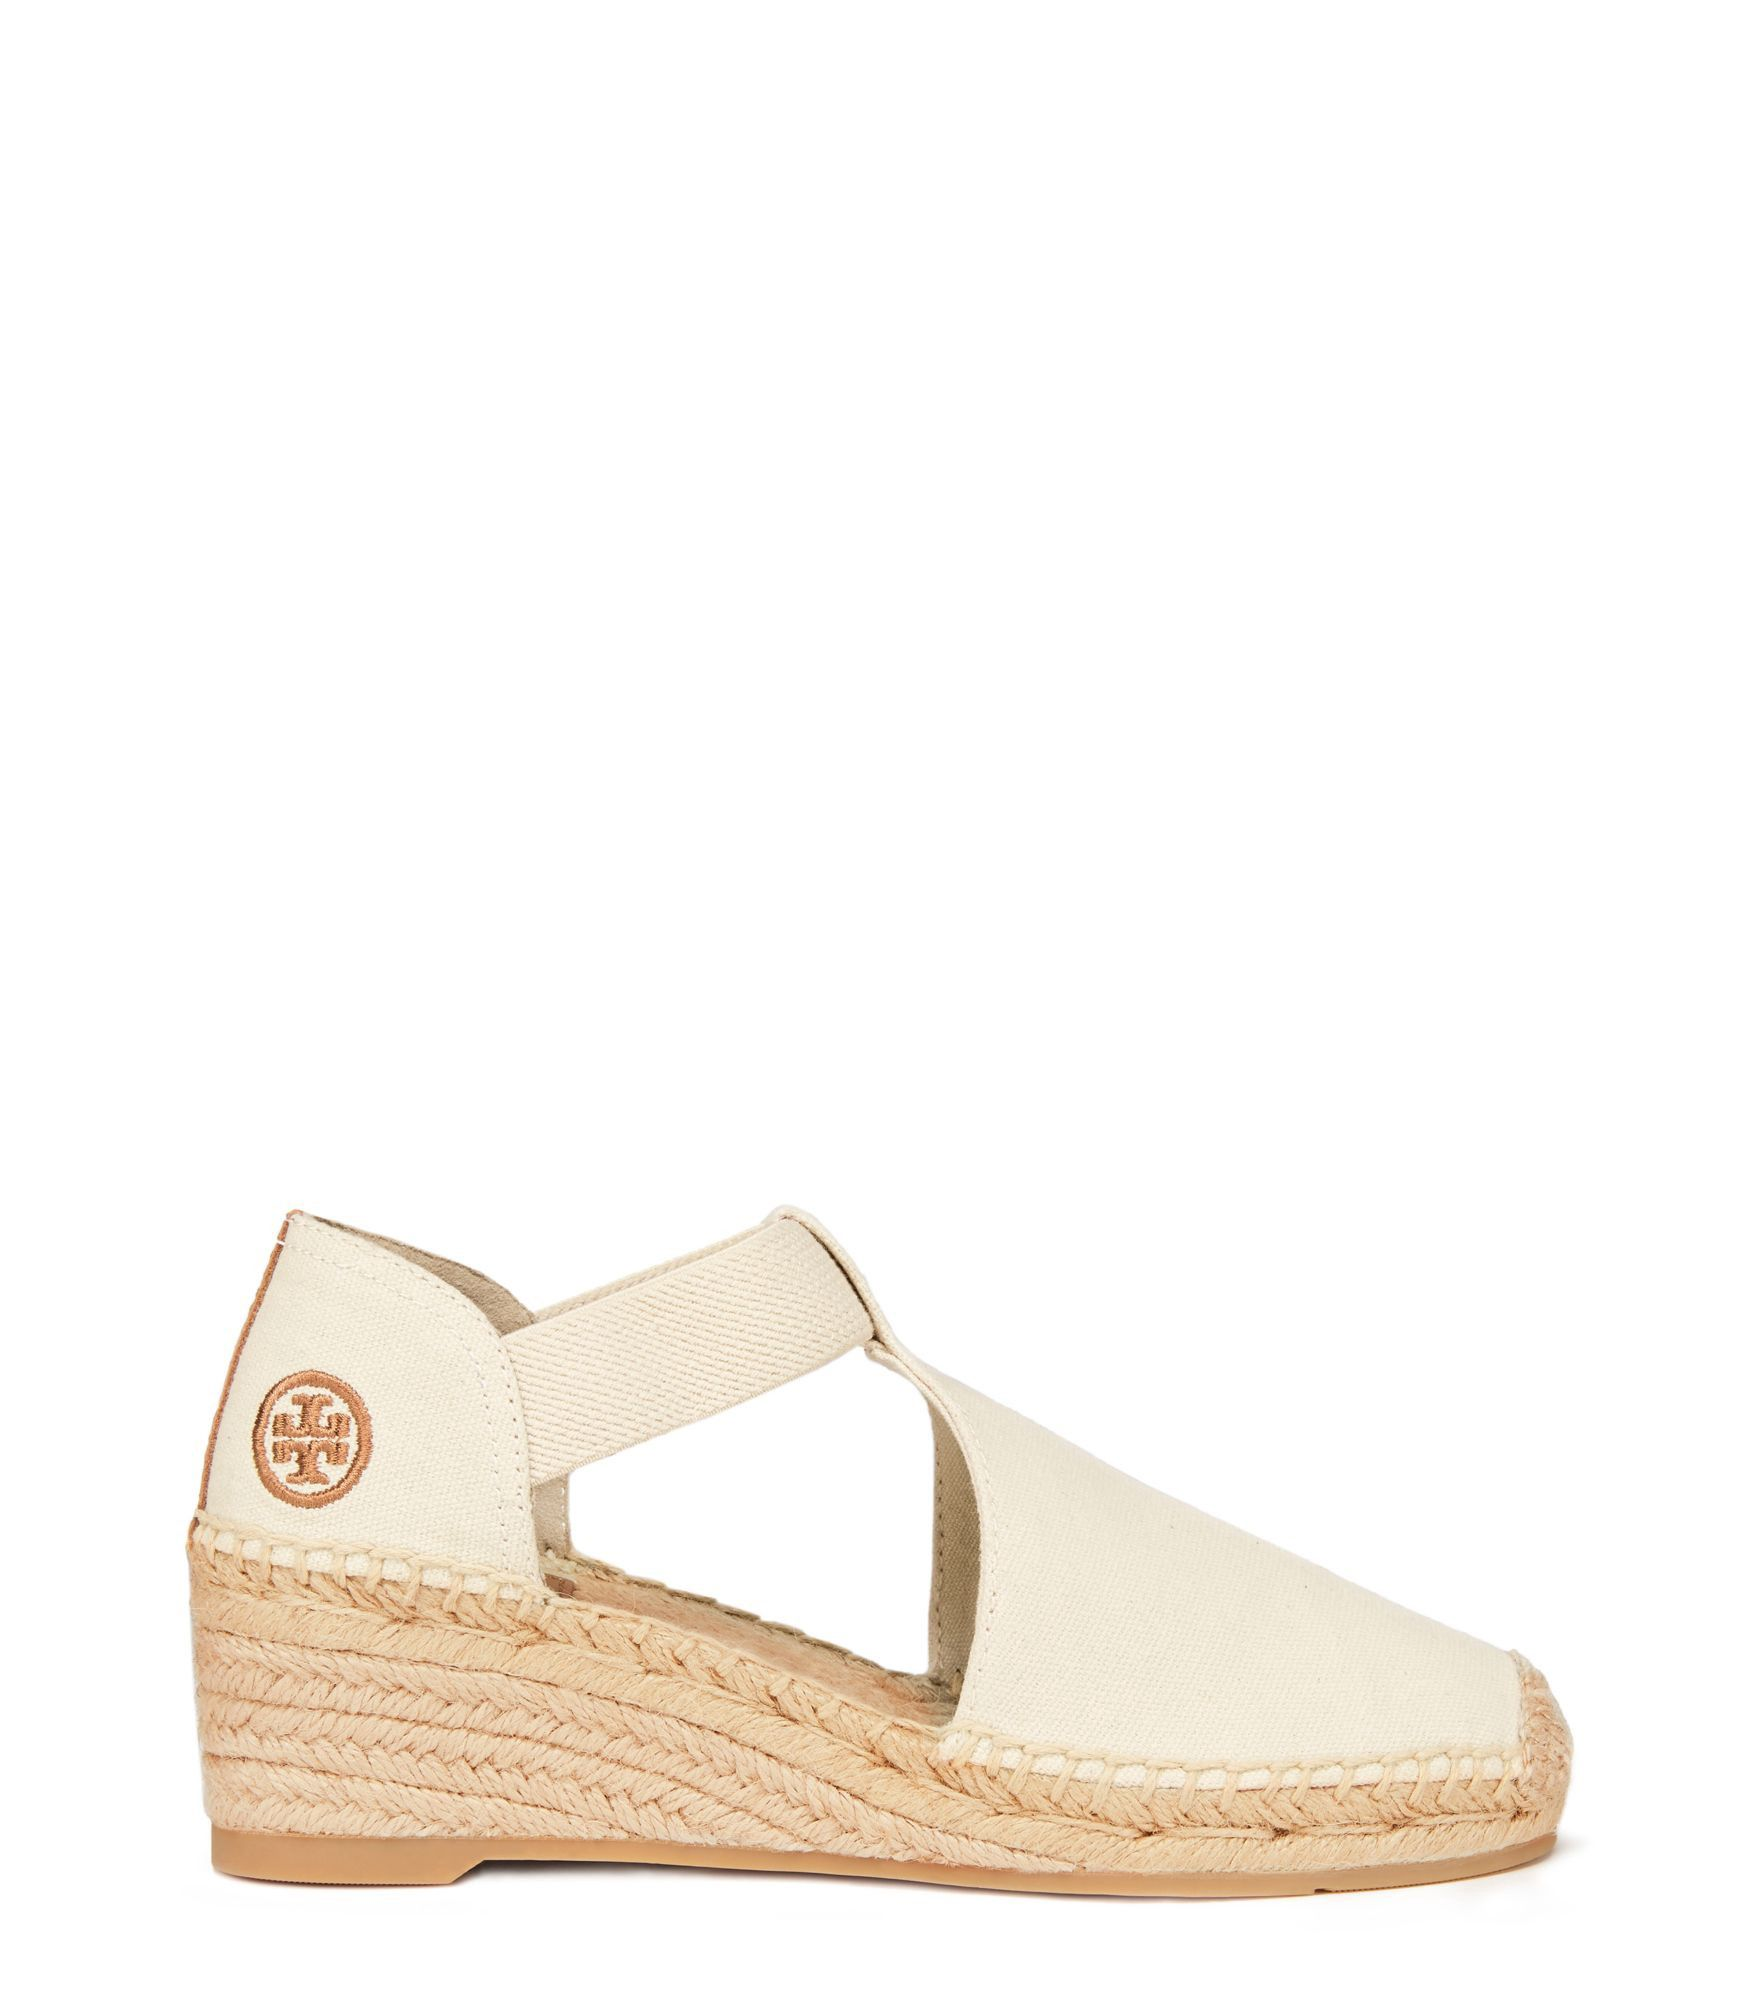 1fb06bb38bc TORY BURCH CATALINA ESPADRILLE WEDGE SANDAL. #toryburch #shoes #all ...